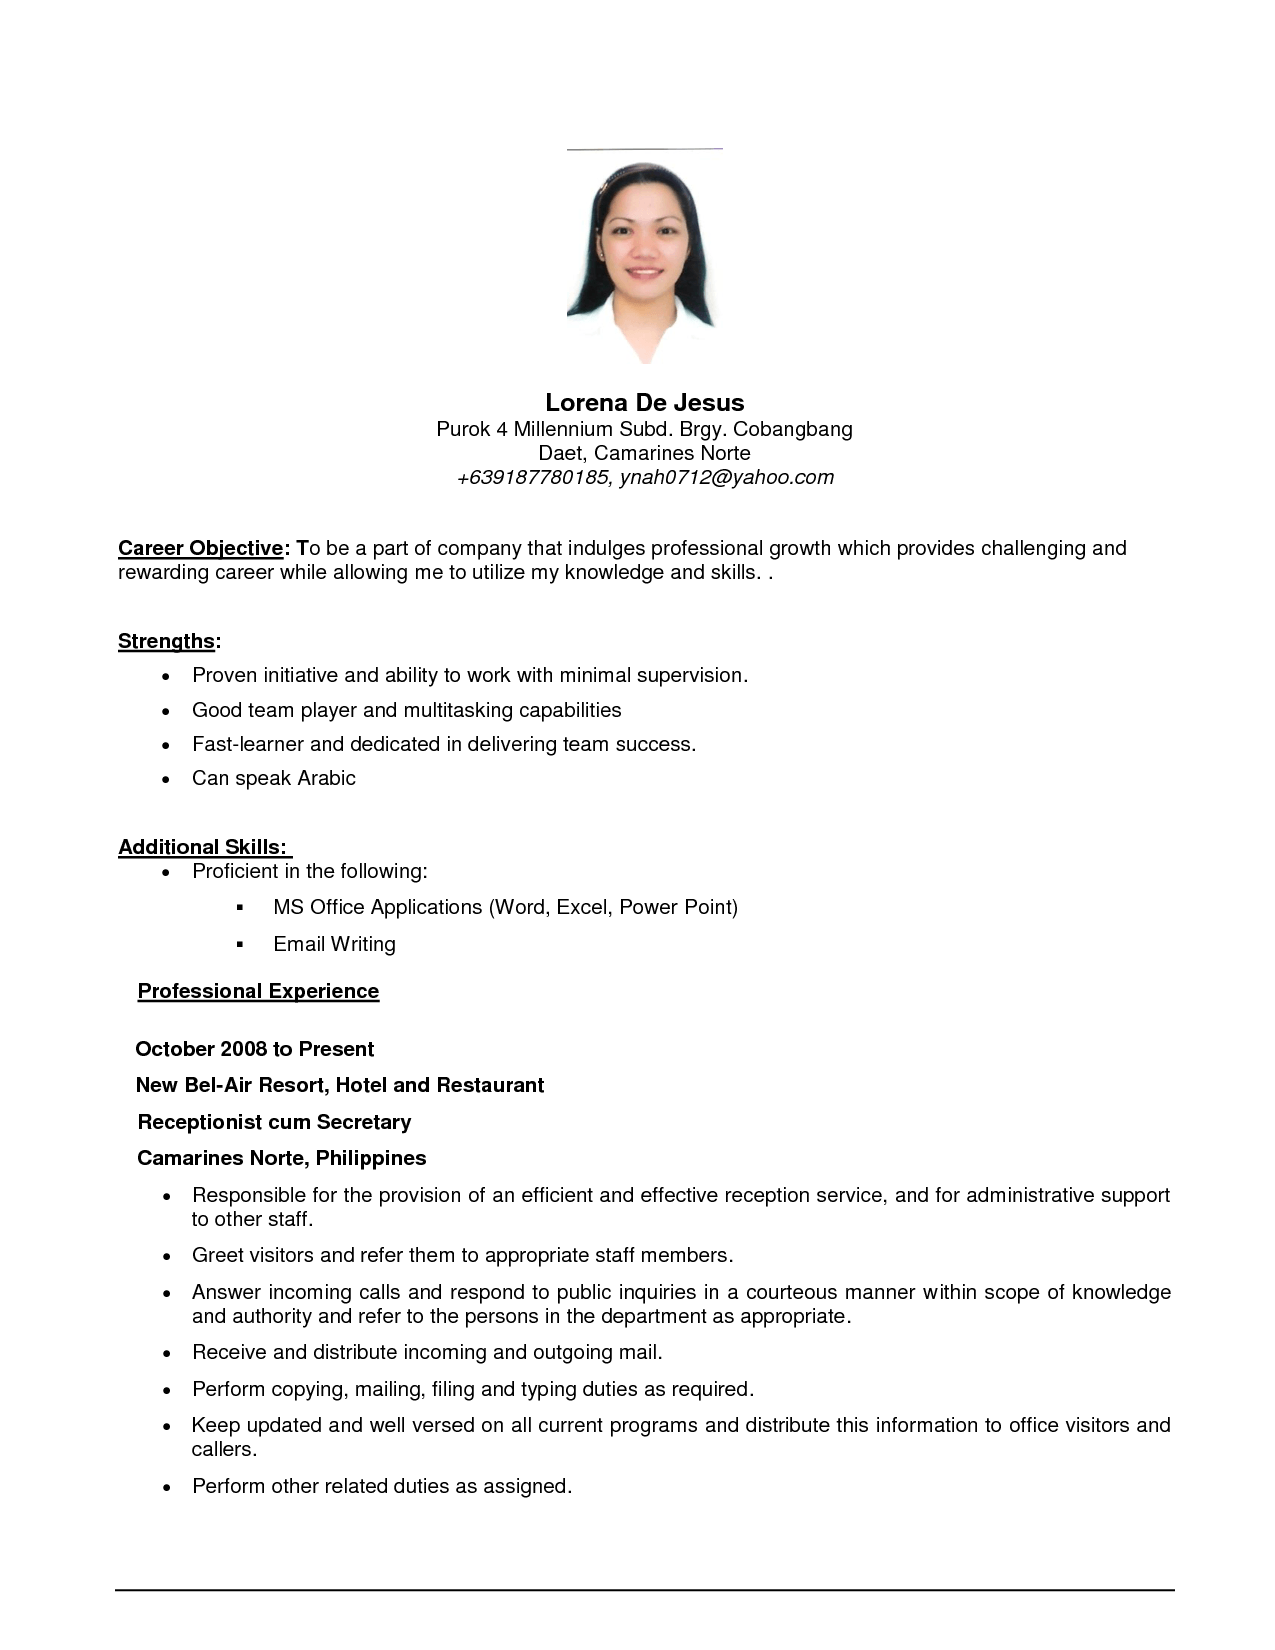 Career Objective Statement Examples Endearing Resume Examples Job Objective  Pinterest  Resume Examples Create .